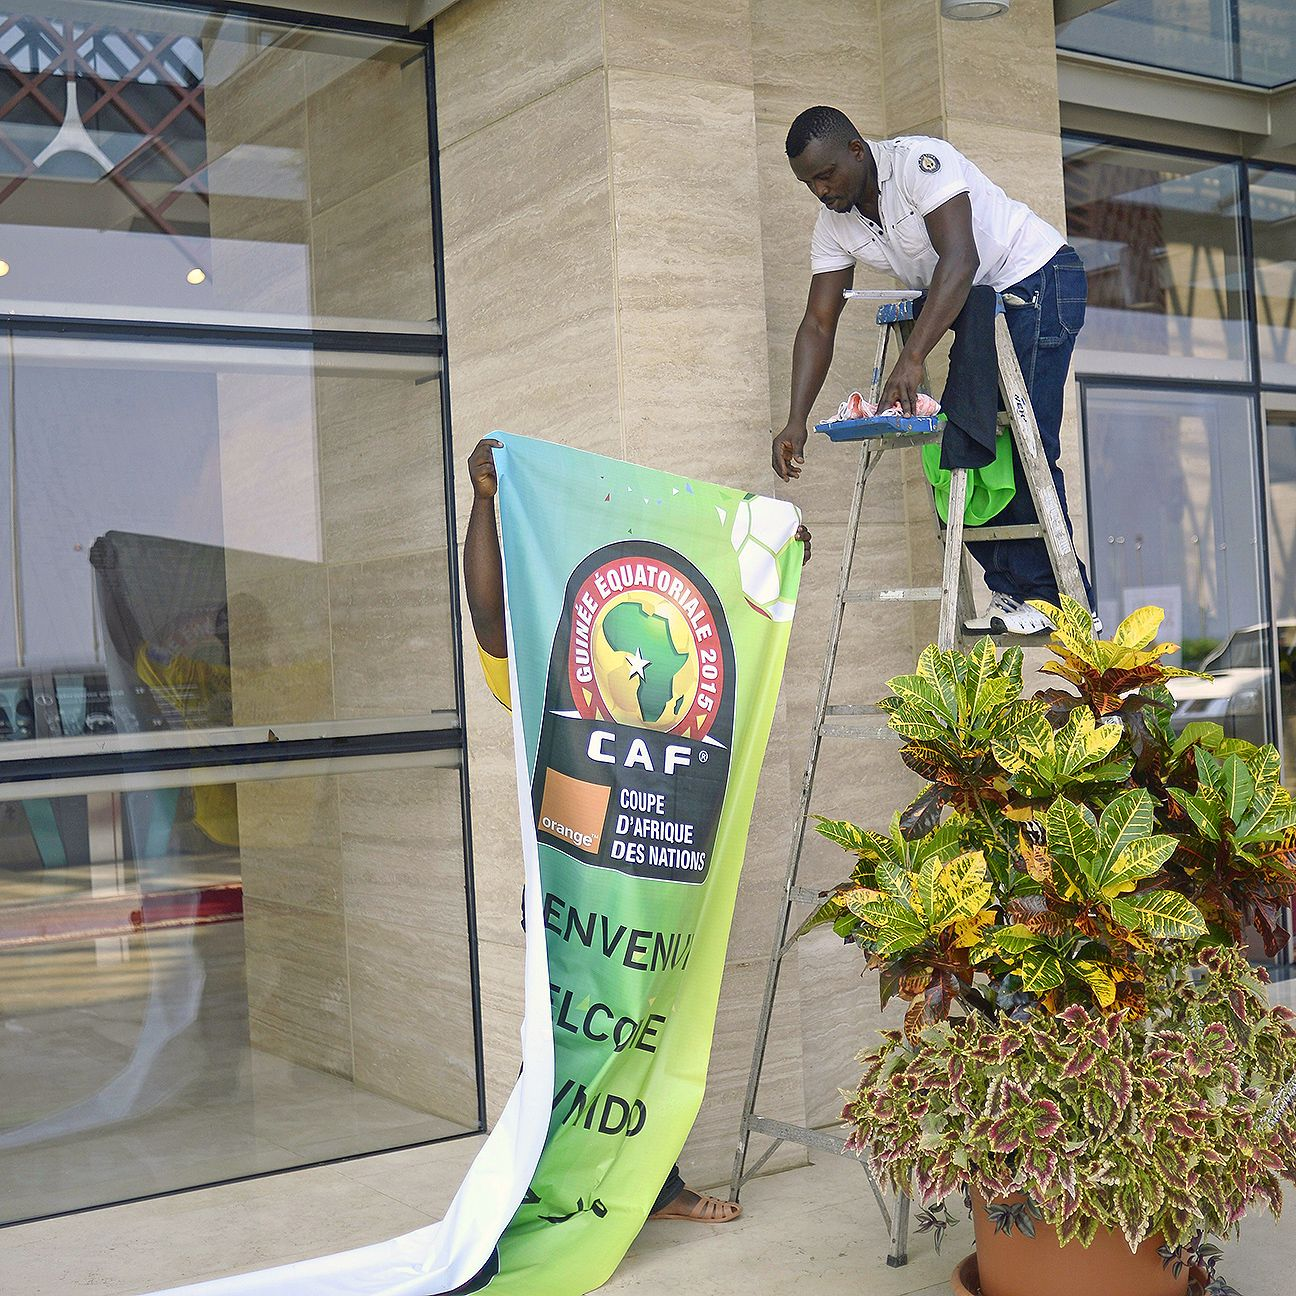 Four cities in Equatorial Guinea will host the 2015 African Nations' Cup.